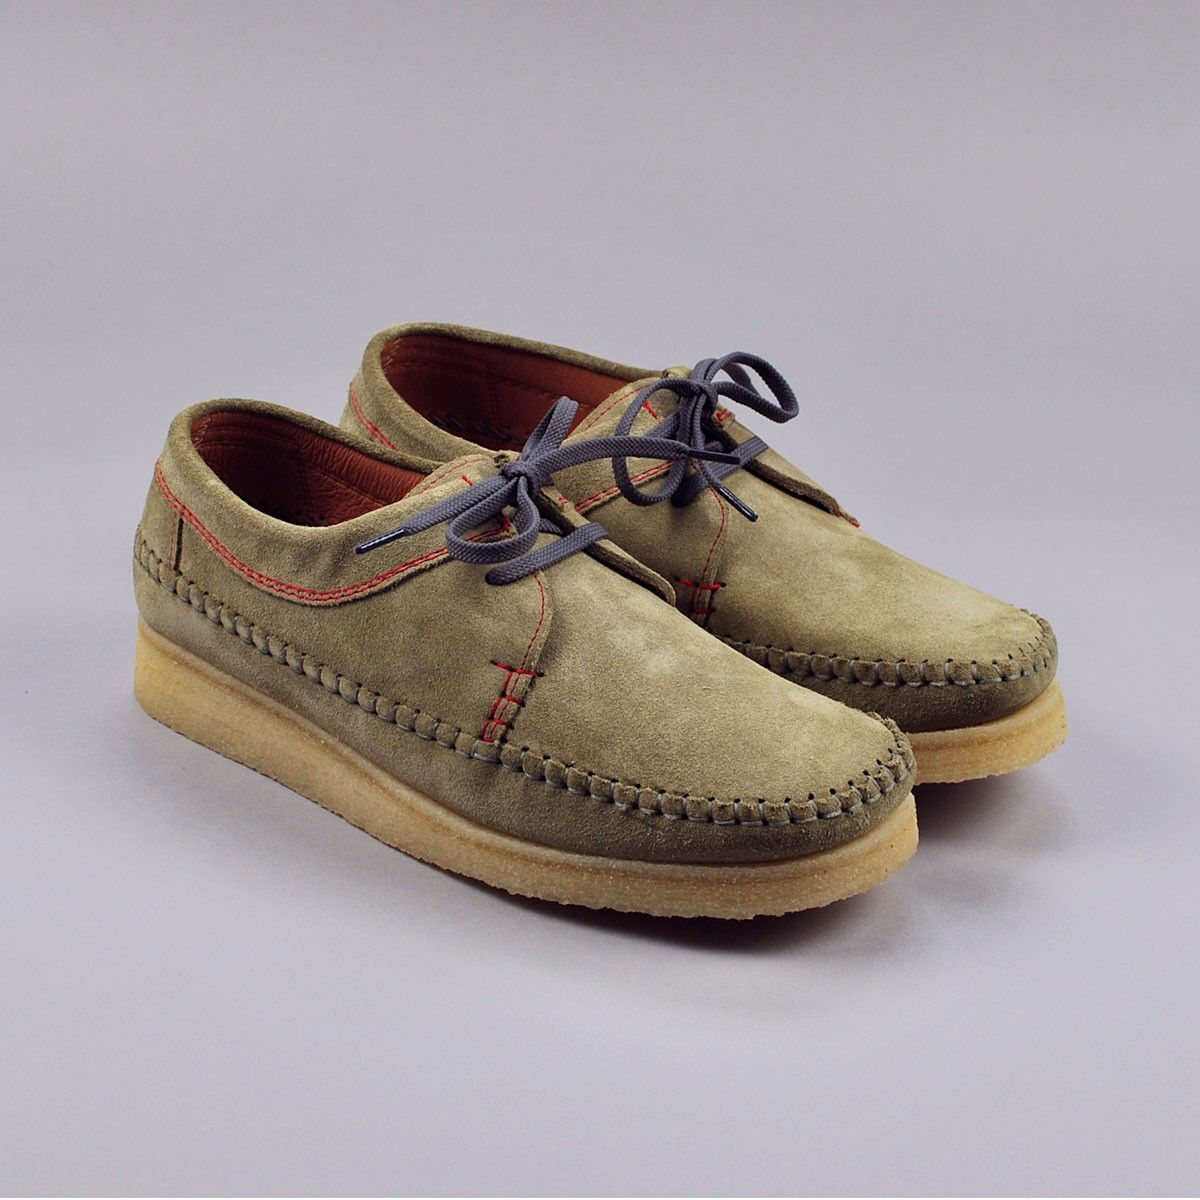 padmore and barnes Google Search | Shoe boots